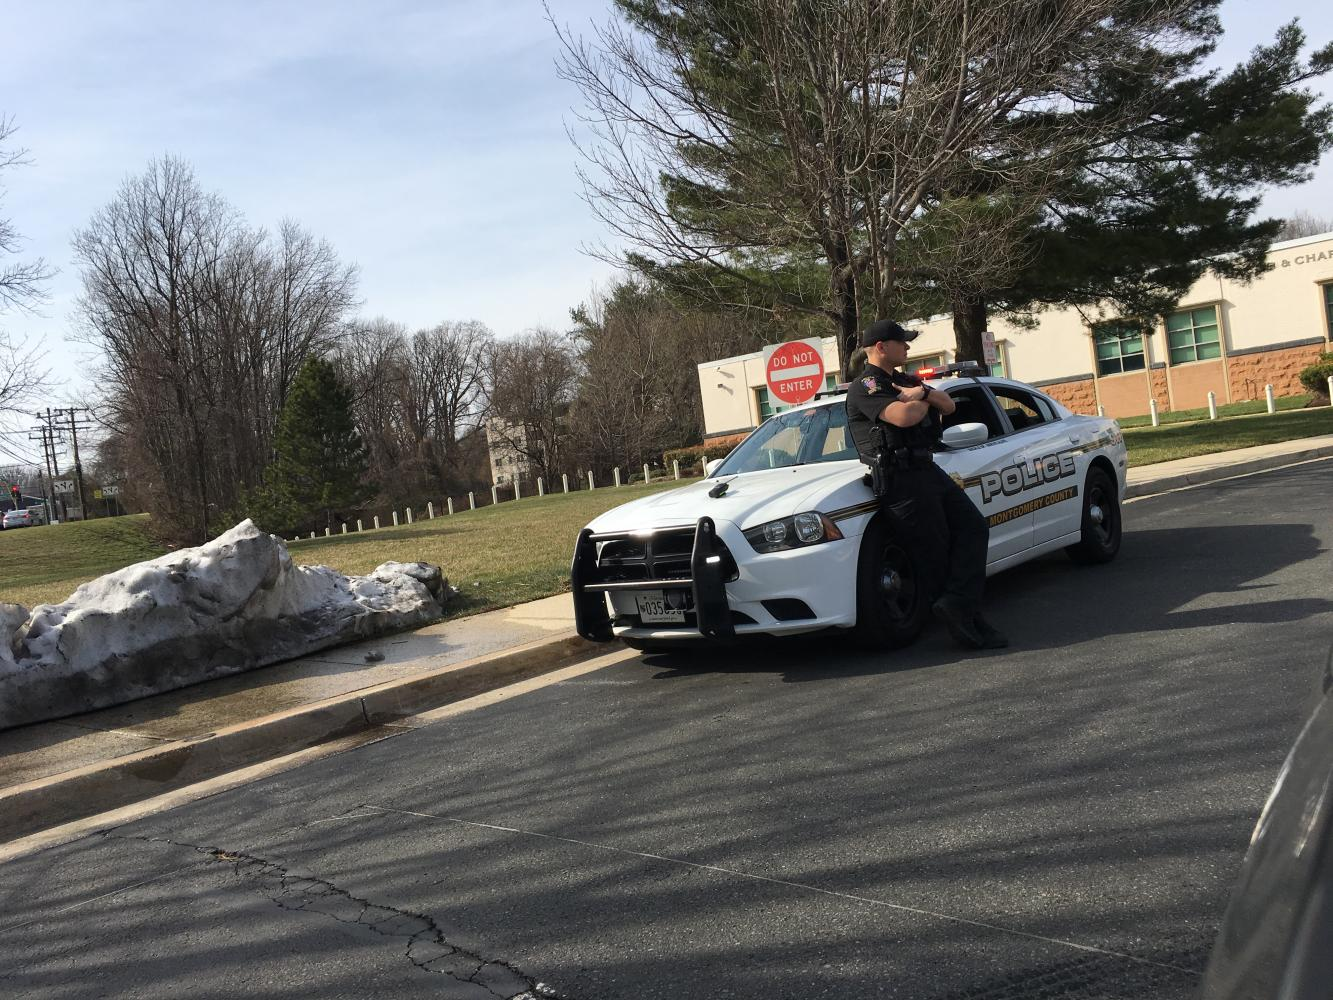 A Montgomery County police car is parked outside the Upper School. Next year, the school is planning to add increased police presence on both campuses.